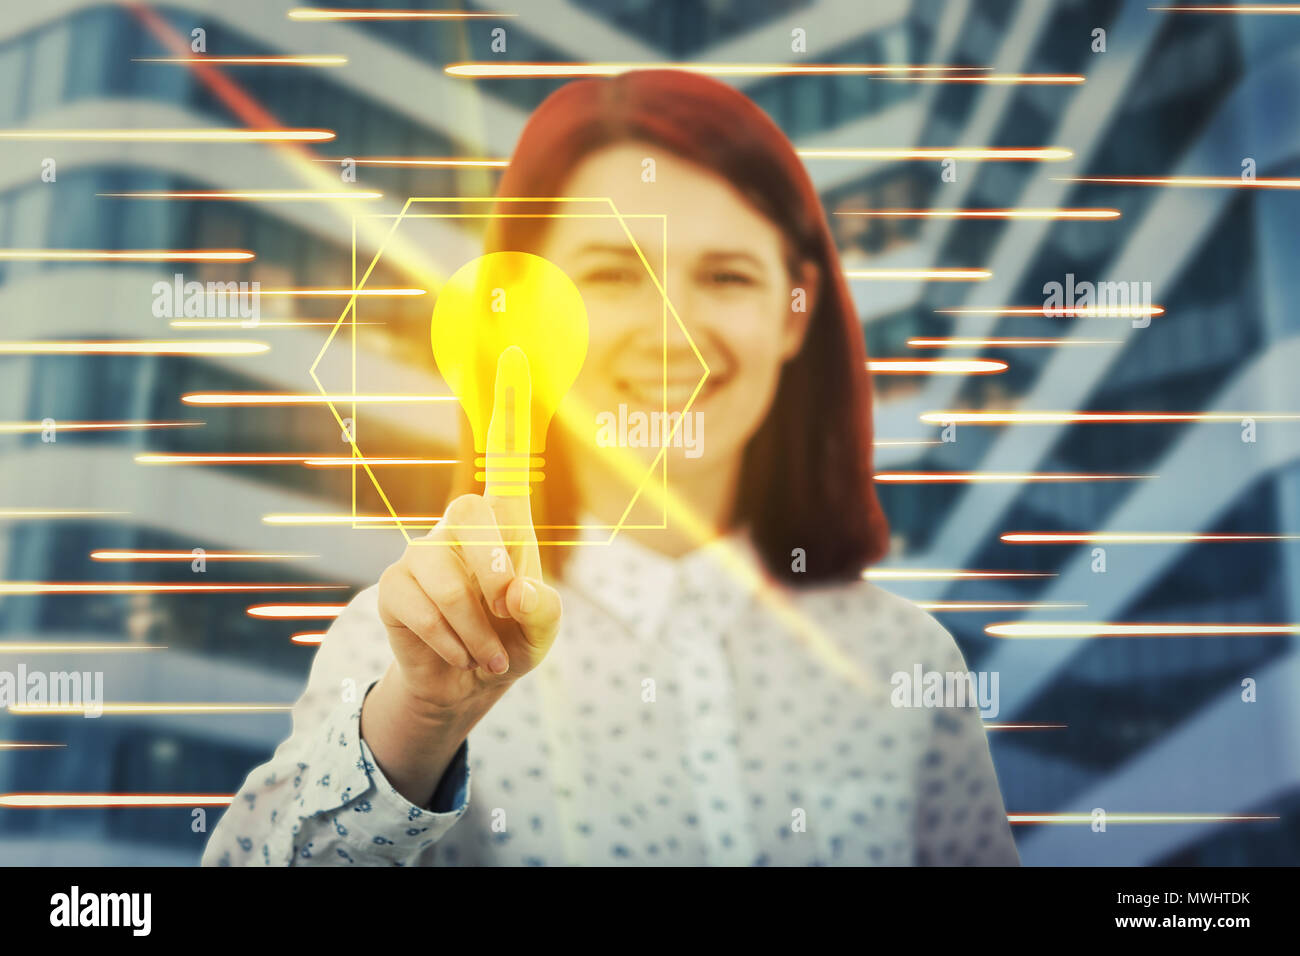 Smiling woman touching digital screen interface with her finger. Press a golden light bulb. Creativity and idea concept in the modern virtual technolo - Stock Image